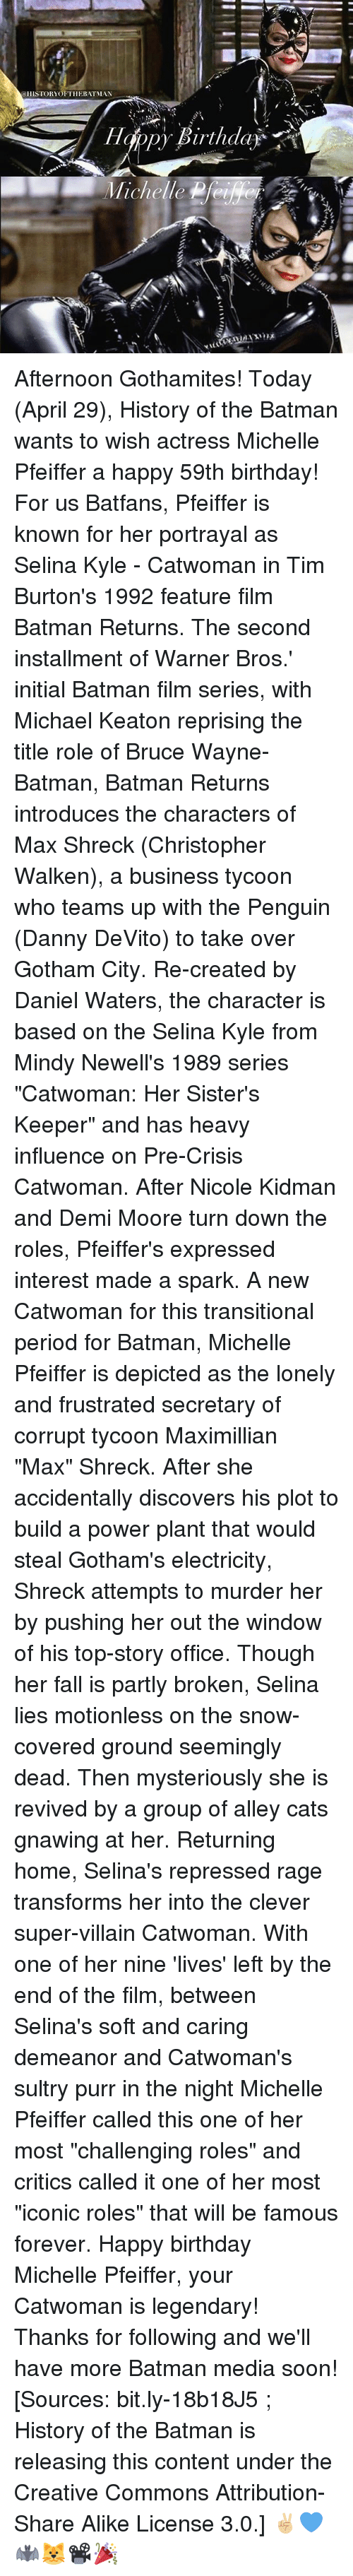 """super villain: a HISTORYOF THE BATMAN  Happy Birthda Afternoon Gothamites! Today (April 29), History of the Batman wants to wish actress Michelle Pfeiffer a happy 59th birthday! For us Batfans, Pfeiffer is known for her portrayal as Selina Kyle - Catwoman in Tim Burton's 1992 feature film Batman Returns. The second installment of Warner Bros.' initial Batman film series, with Michael Keaton reprising the title role of Bruce Wayne-Batman, Batman Returns introduces the characters of Max Shreck (Christopher Walken), a business tycoon who teams up with the Penguin (Danny DeVito) to take over Gotham City. Re-created by Daniel Waters, the character is based on the Selina Kyle from Mindy Newell's 1989 series """"Catwoman: Her Sister's Keeper"""" and has heavy influence on Pre-Crisis Catwoman. After Nicole Kidman and Demi Moore turn down the roles, Pfeiffer's expressed interest made a spark. A new Catwoman for this transitional period for Batman, Michelle Pfeiffer is depicted as the lonely and frustrated secretary of corrupt tycoon Maximillian """"Max"""" Shreck. After she accidentally discovers his plot to build a power plant that would steal Gotham's electricity, Shreck attempts to murder her by pushing her out the window of his top-story office. Though her fall is partly broken, Selina lies motionless on the snow-covered ground seemingly dead. Then mysteriously she is revived by a group of alley cats gnawing at her. Returning home, Selina's repressed rage transforms her into the clever super-villain Catwoman. With one of her nine 'lives' left by the end of the film, between Selina's soft and caring demeanor and Catwoman's sultry purr in the night Michelle Pfeiffer called this one of her most """"challenging roles"""" and critics called it one of her most """"iconic roles"""" that will be famous forever. Happy birthday Michelle Pfeiffer, your Catwoman is legendary! Thanks for following and we'll have more Batman media soon! [Sources: bit.ly-18b18J5 ; History of the Batman is releasing this conte"""